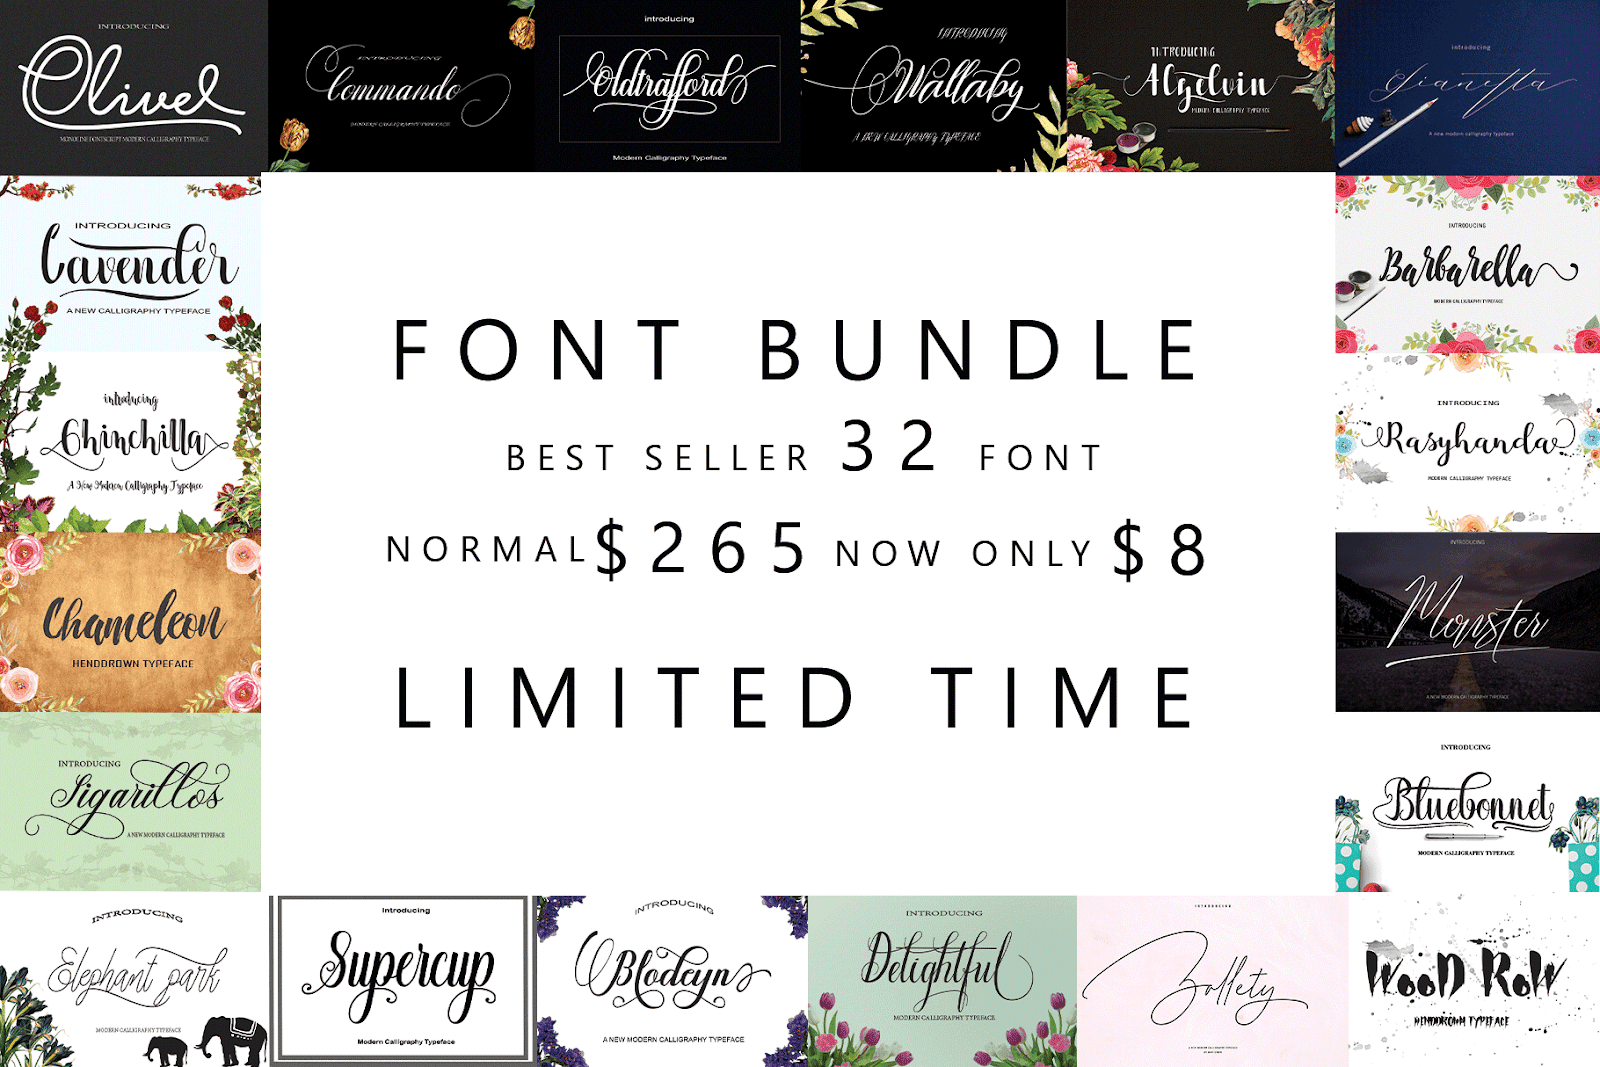 Massive Font Bundles Collections